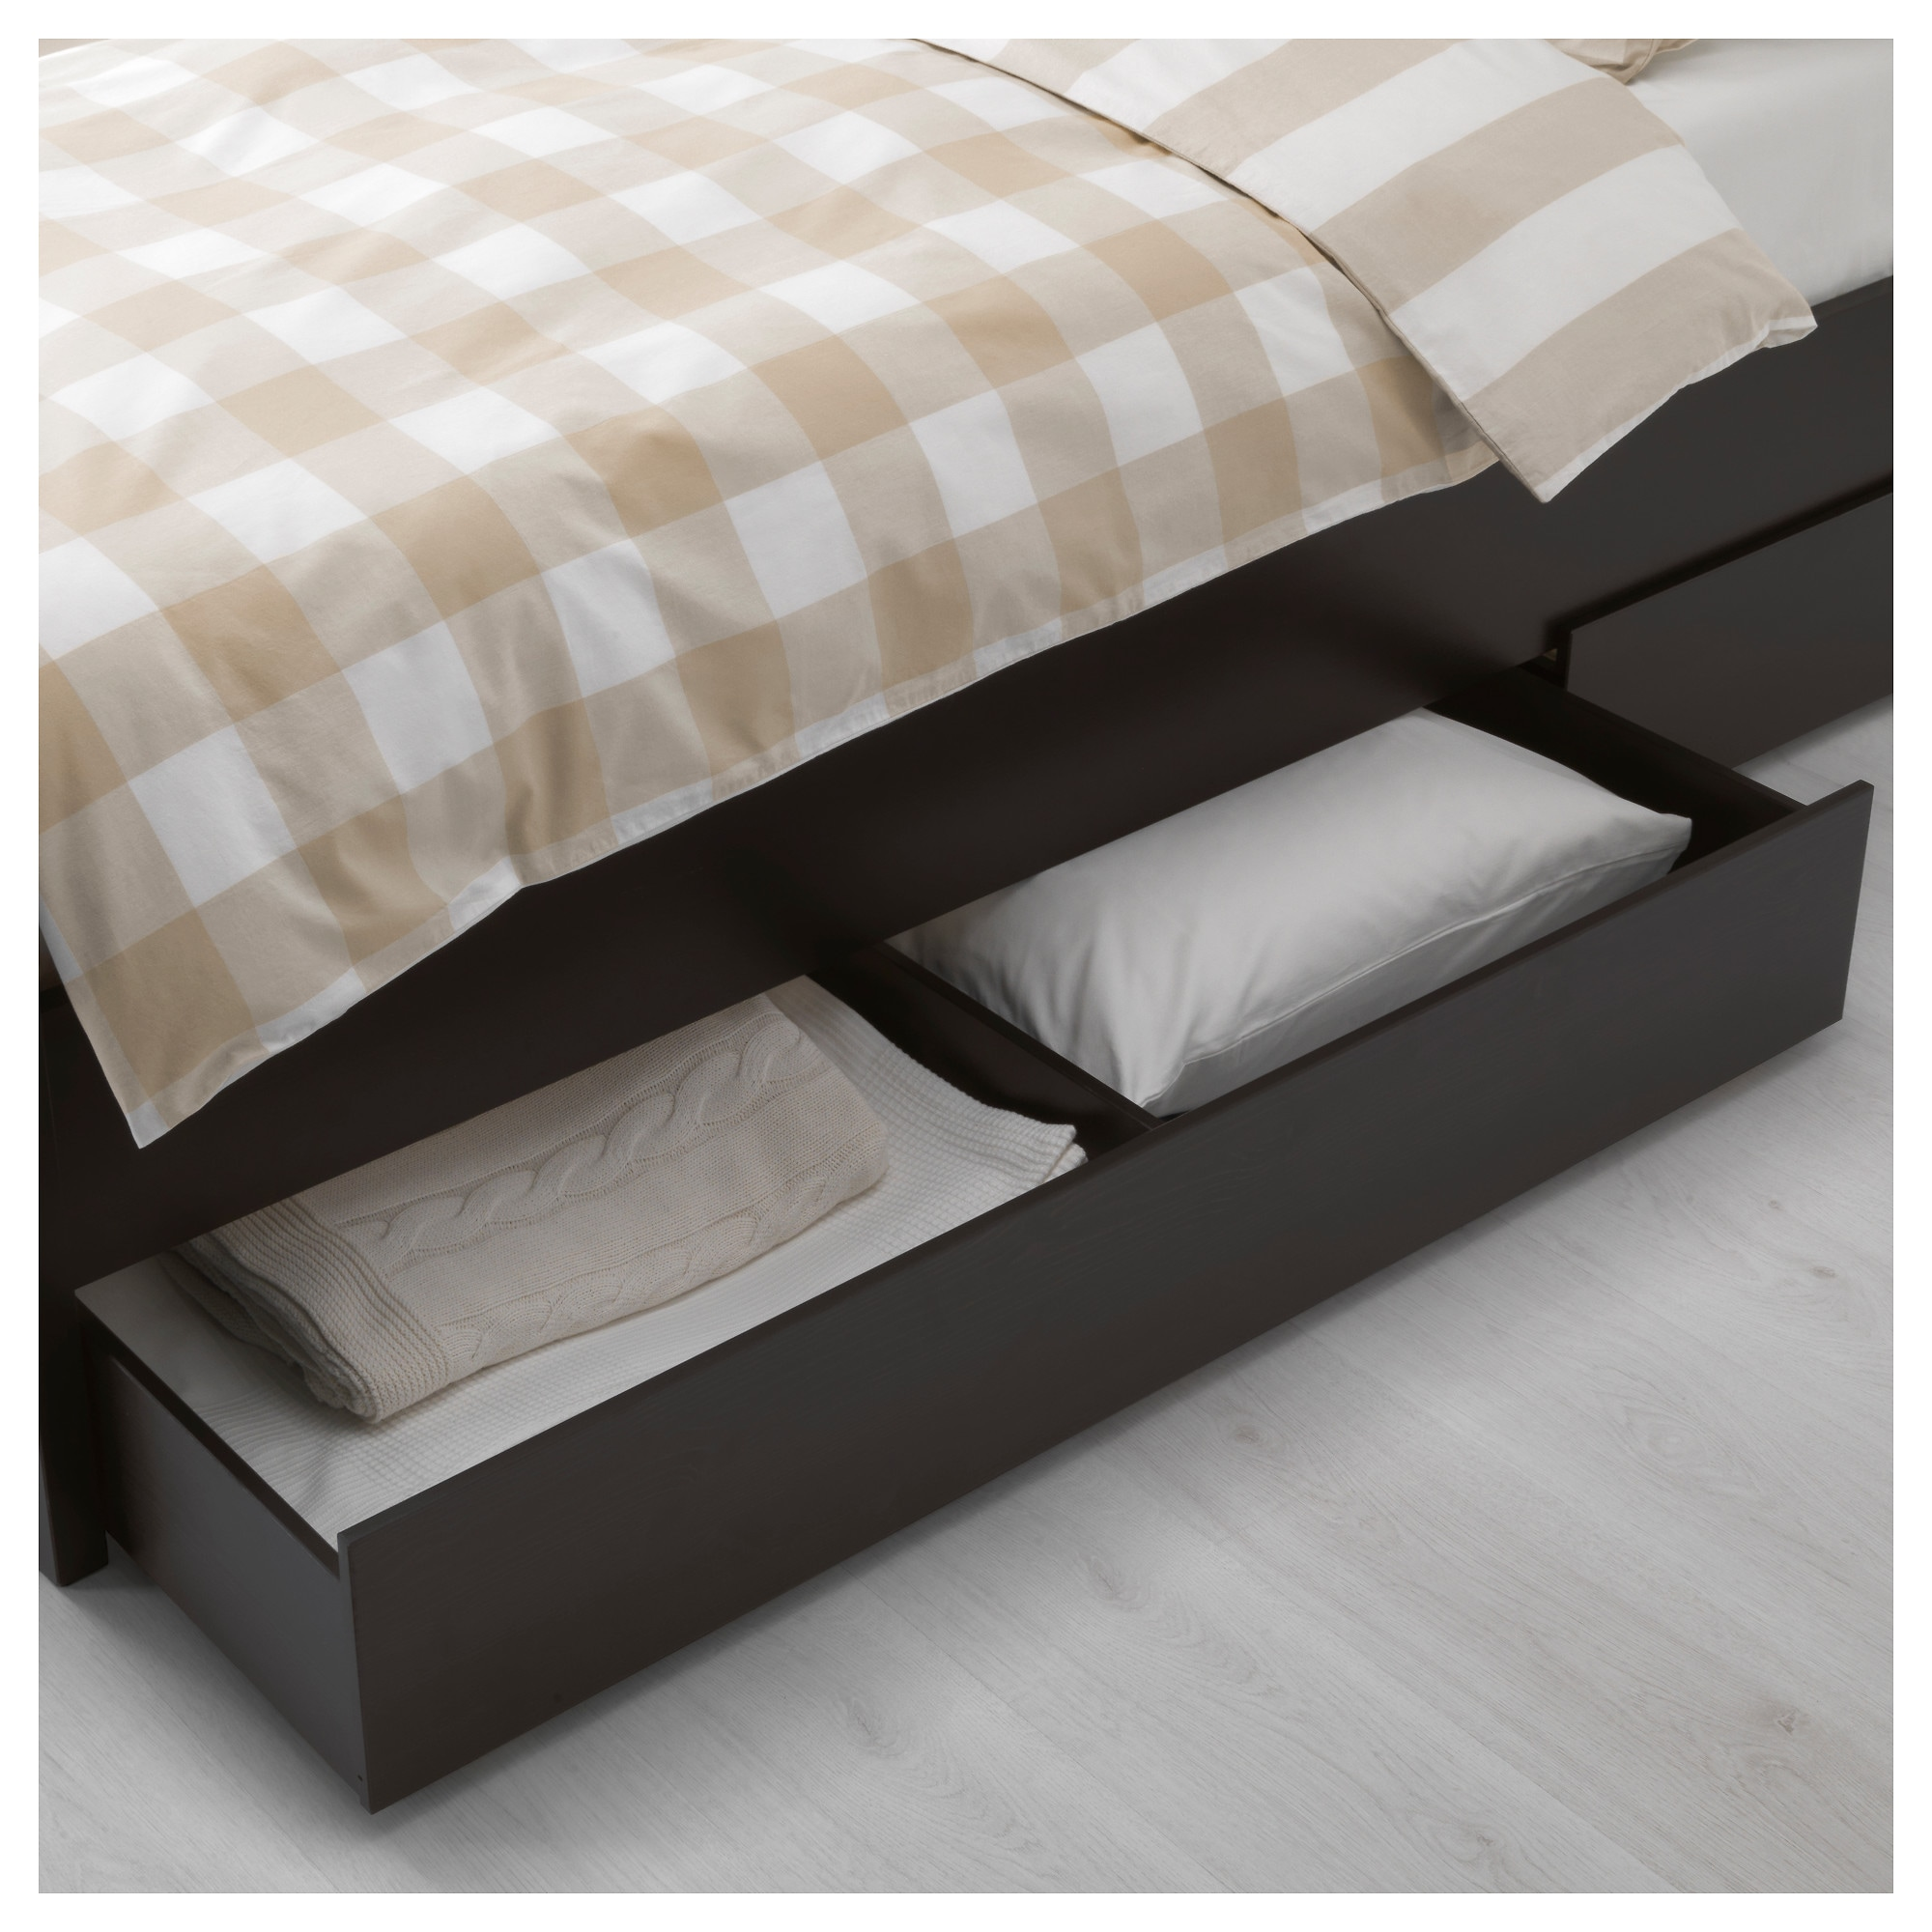 Bed frame with storage - Bed Frame With Storage